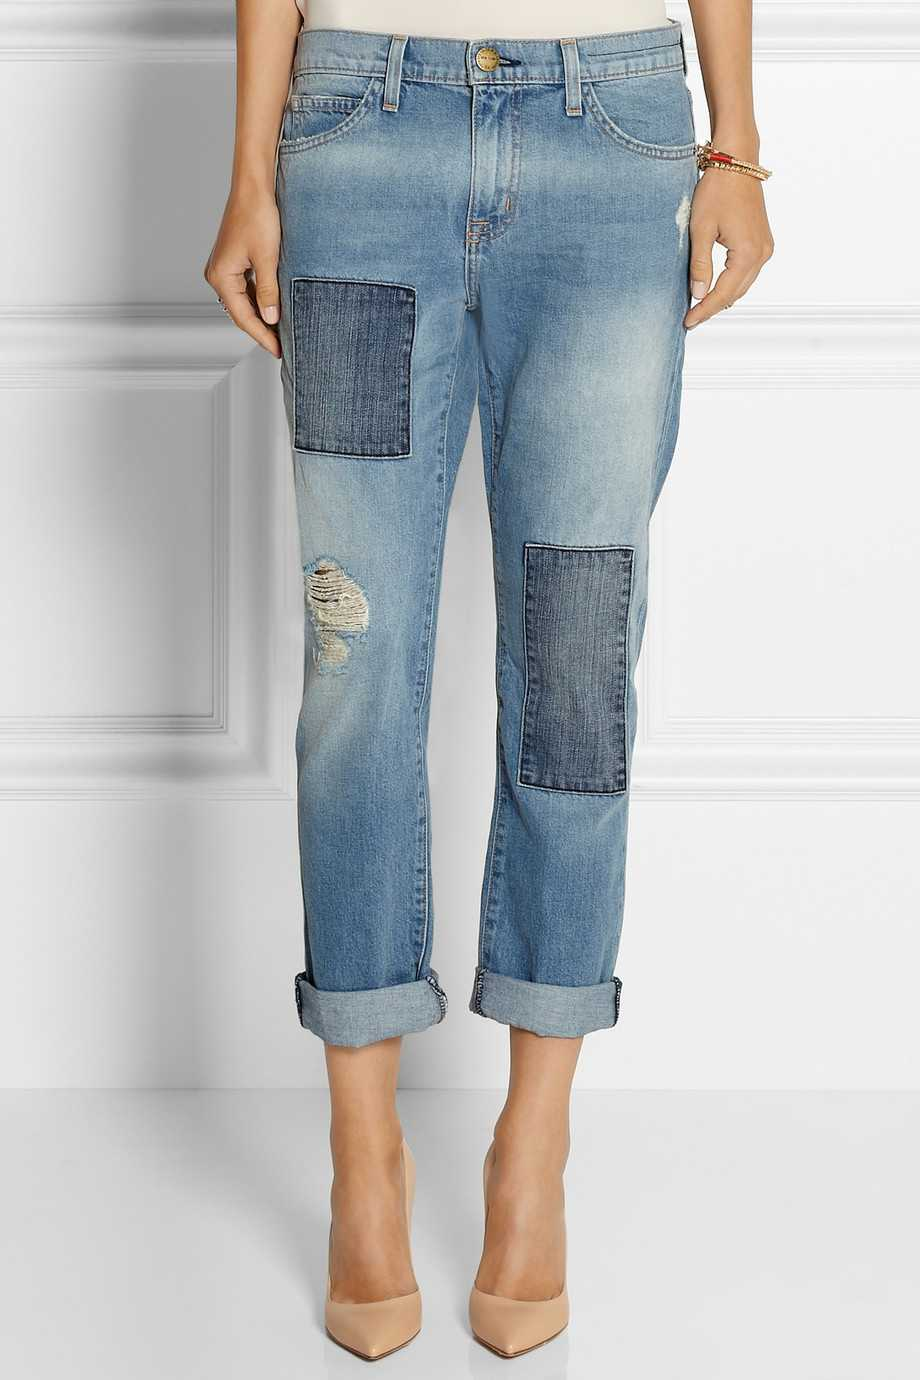 Current/Elliott - Jean (318 €)